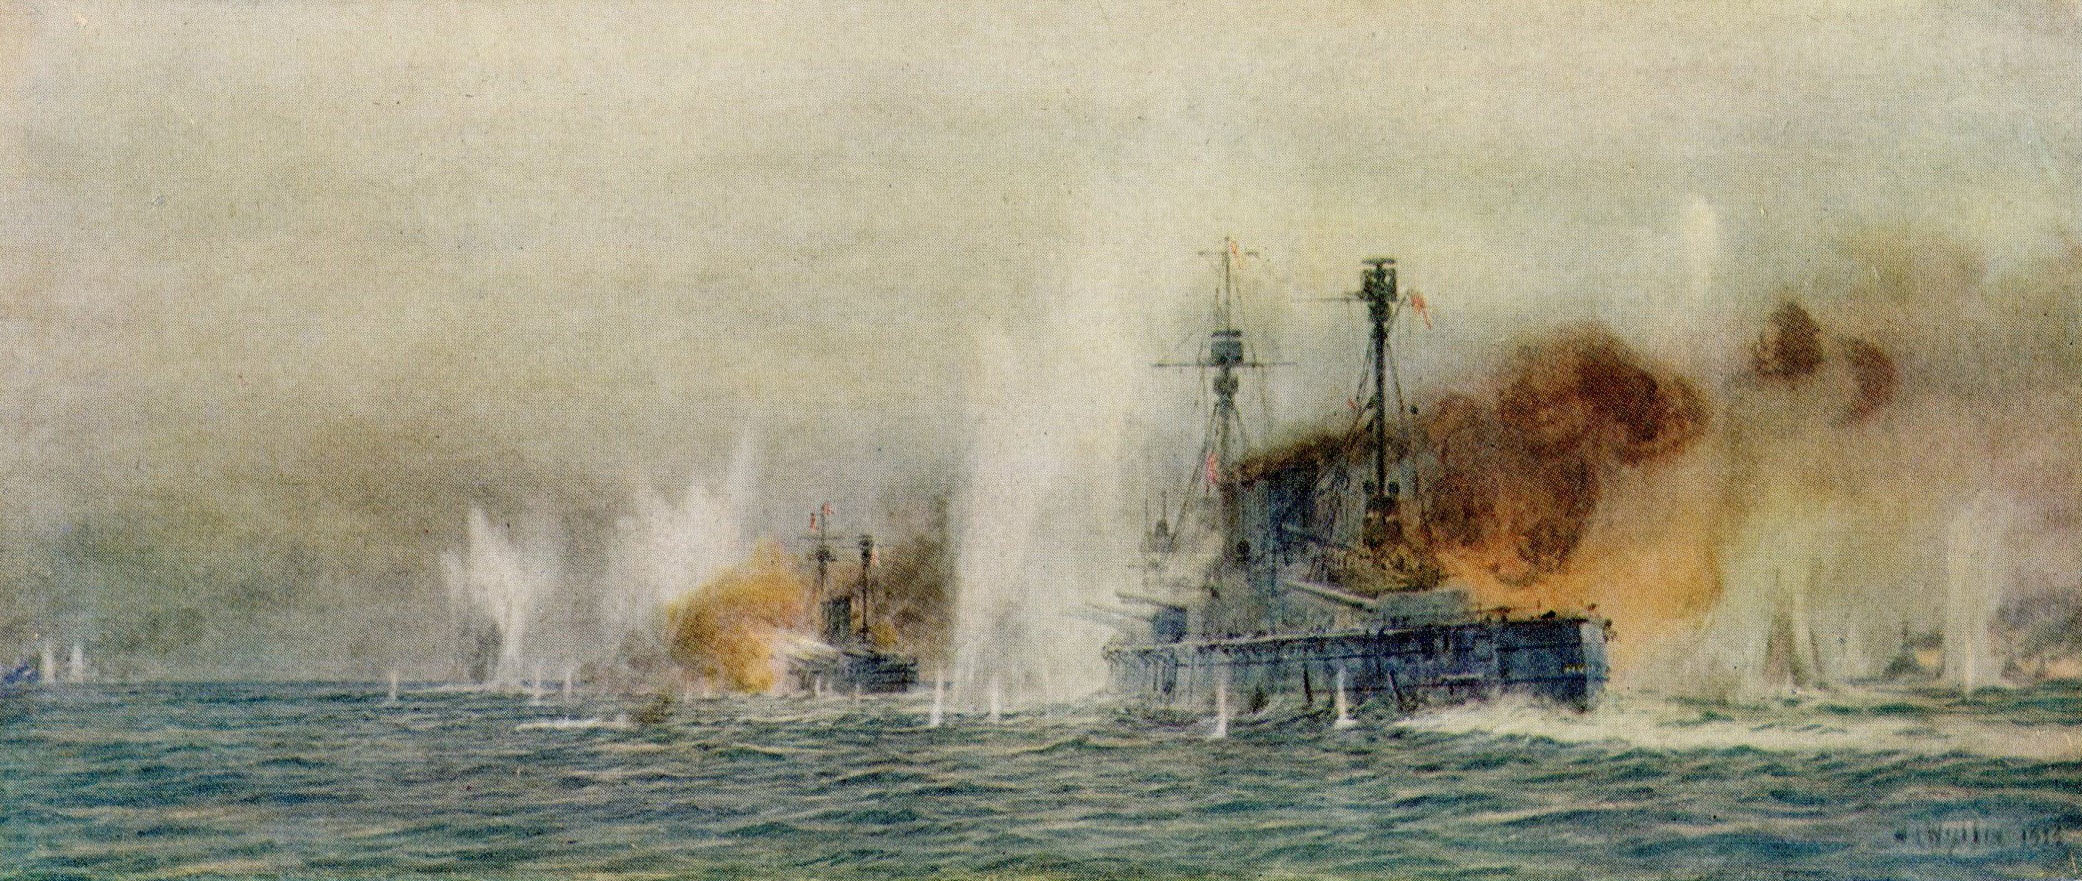 British Cruisers HMS Warrior and Defence of Admiral Arbuthnot's 1st Cruiser Squadron in action against Hipper's Battle Cruisers at the Battle of Jutland 31st May 1916: picture by Lionel Wyllie: to buy this picture click here